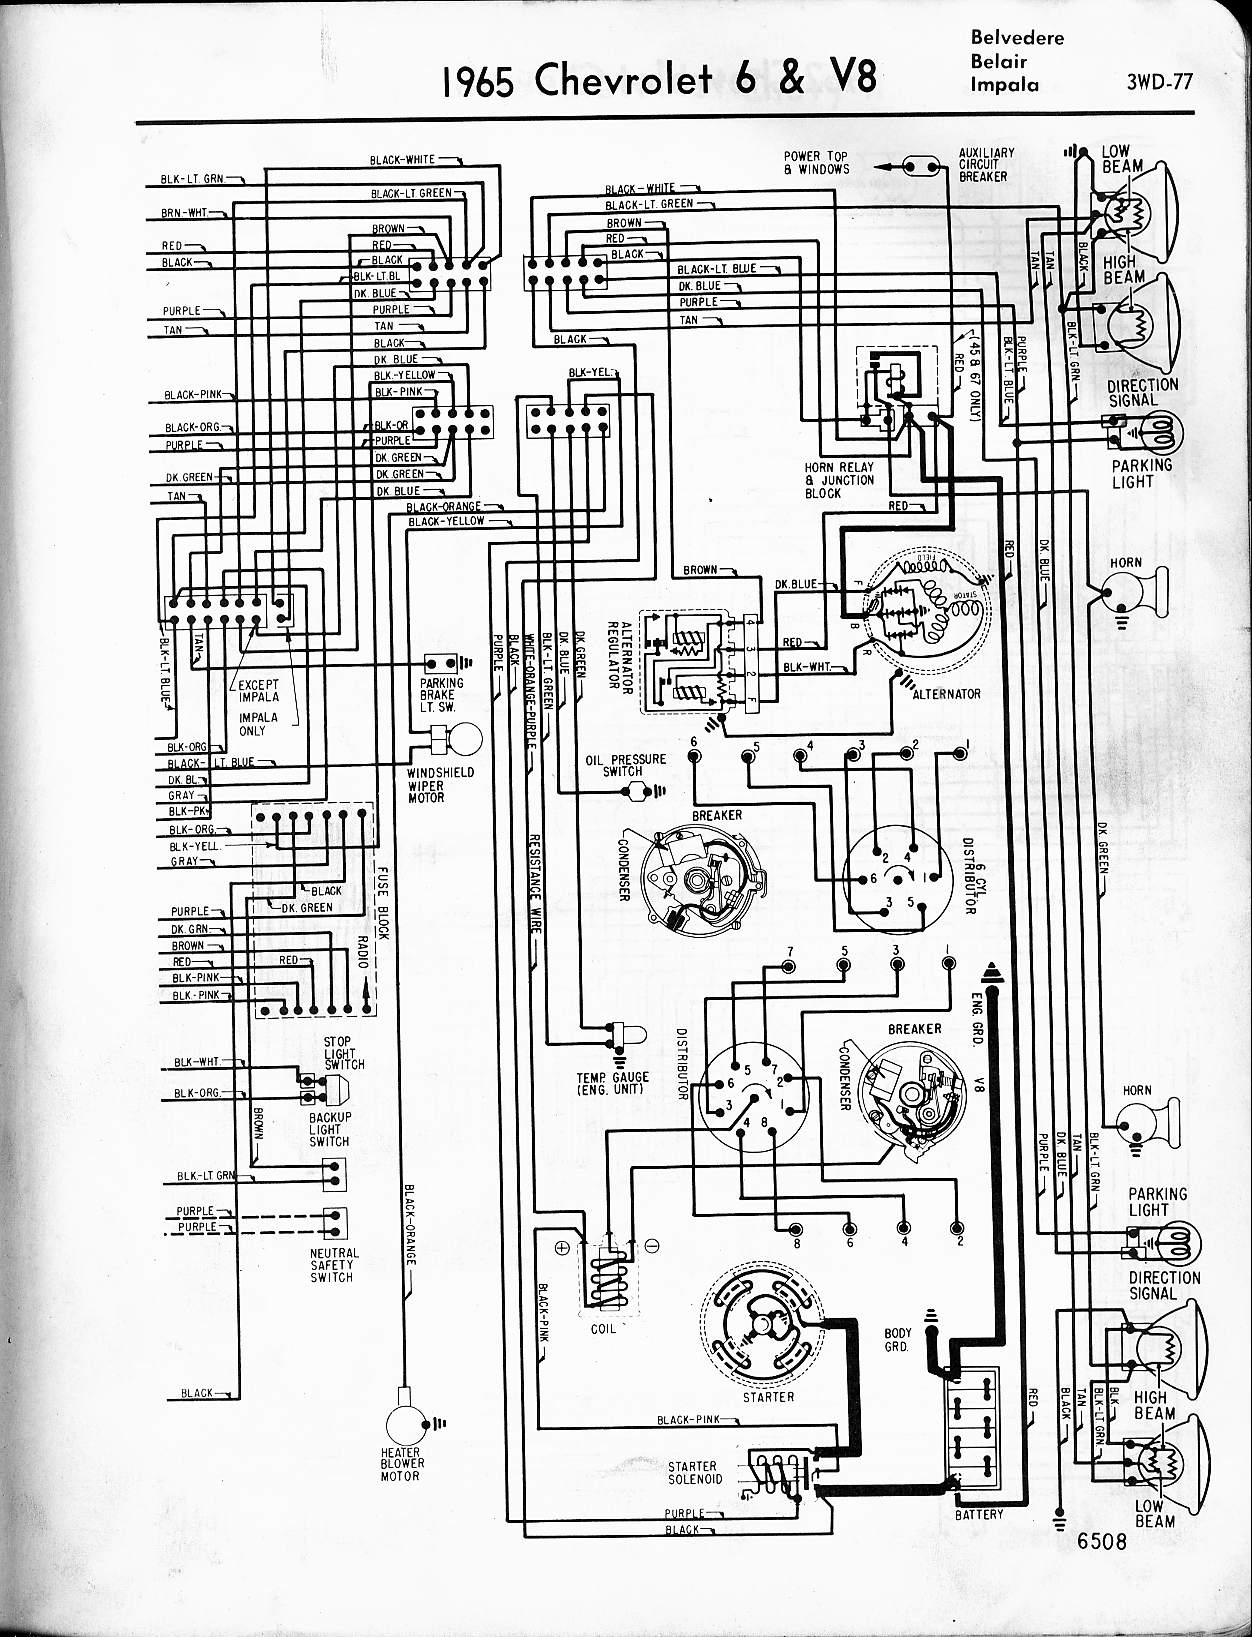 1965 Chevelle Fuse Box Books Of Wiring Diagram Lincoln Continental Chevy Diagrams Rh Wizard Com